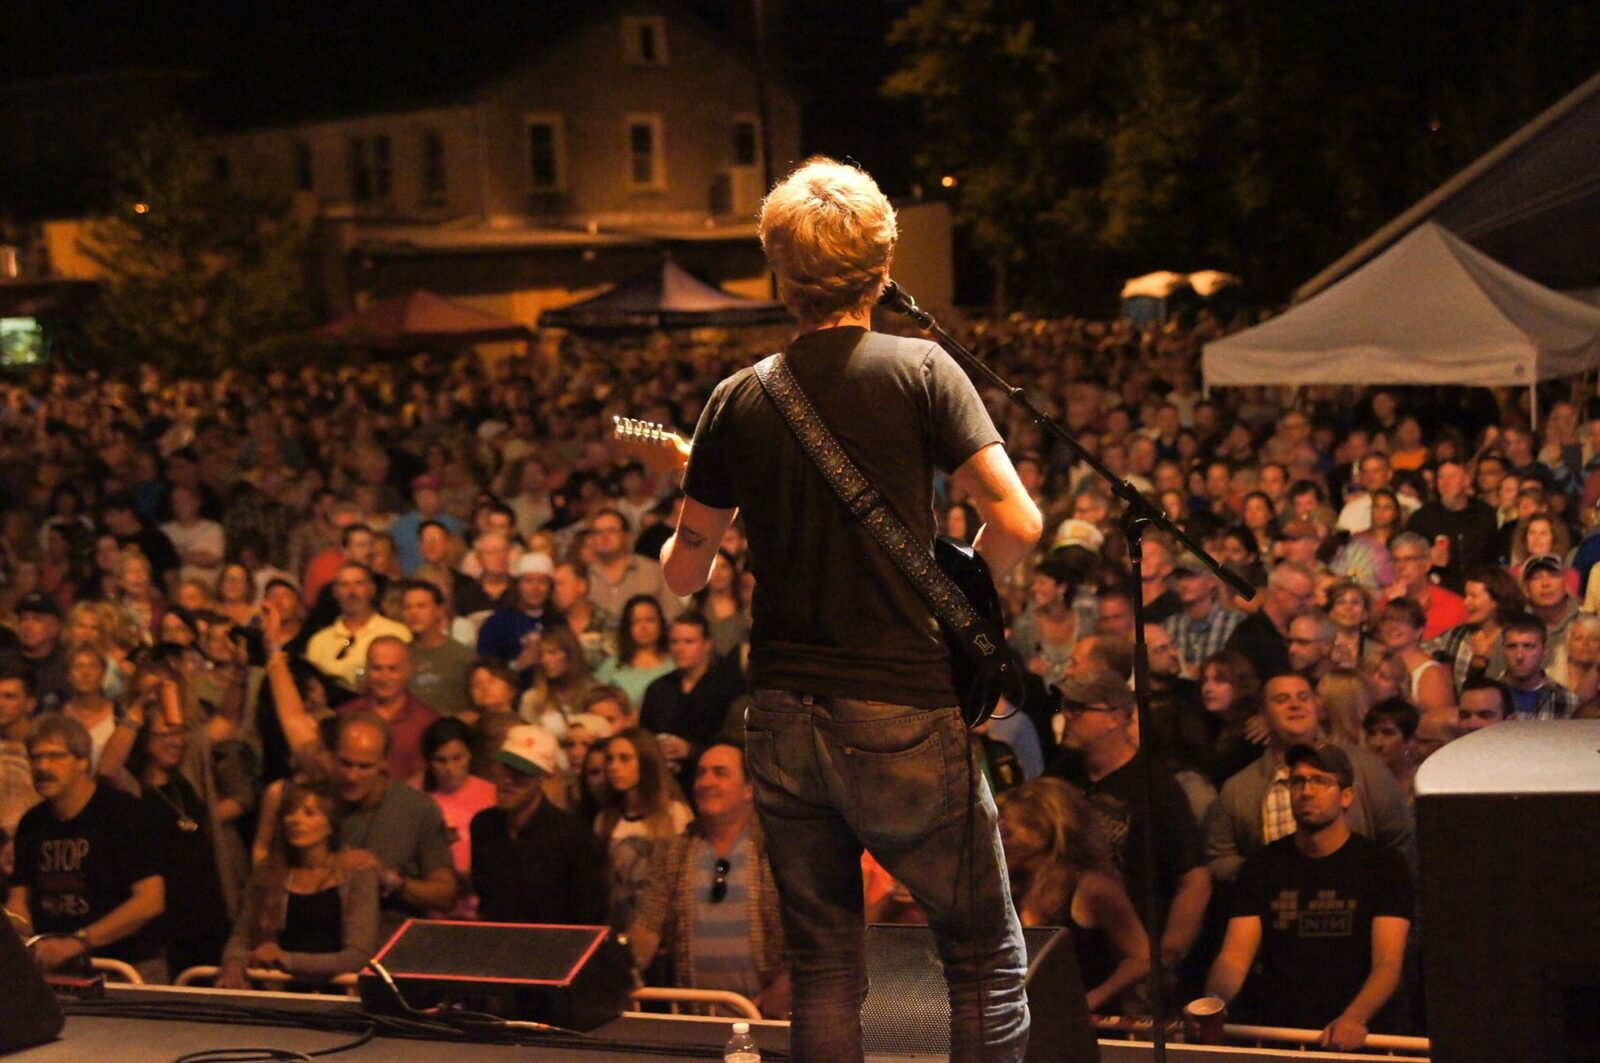 fairport music fest crowd